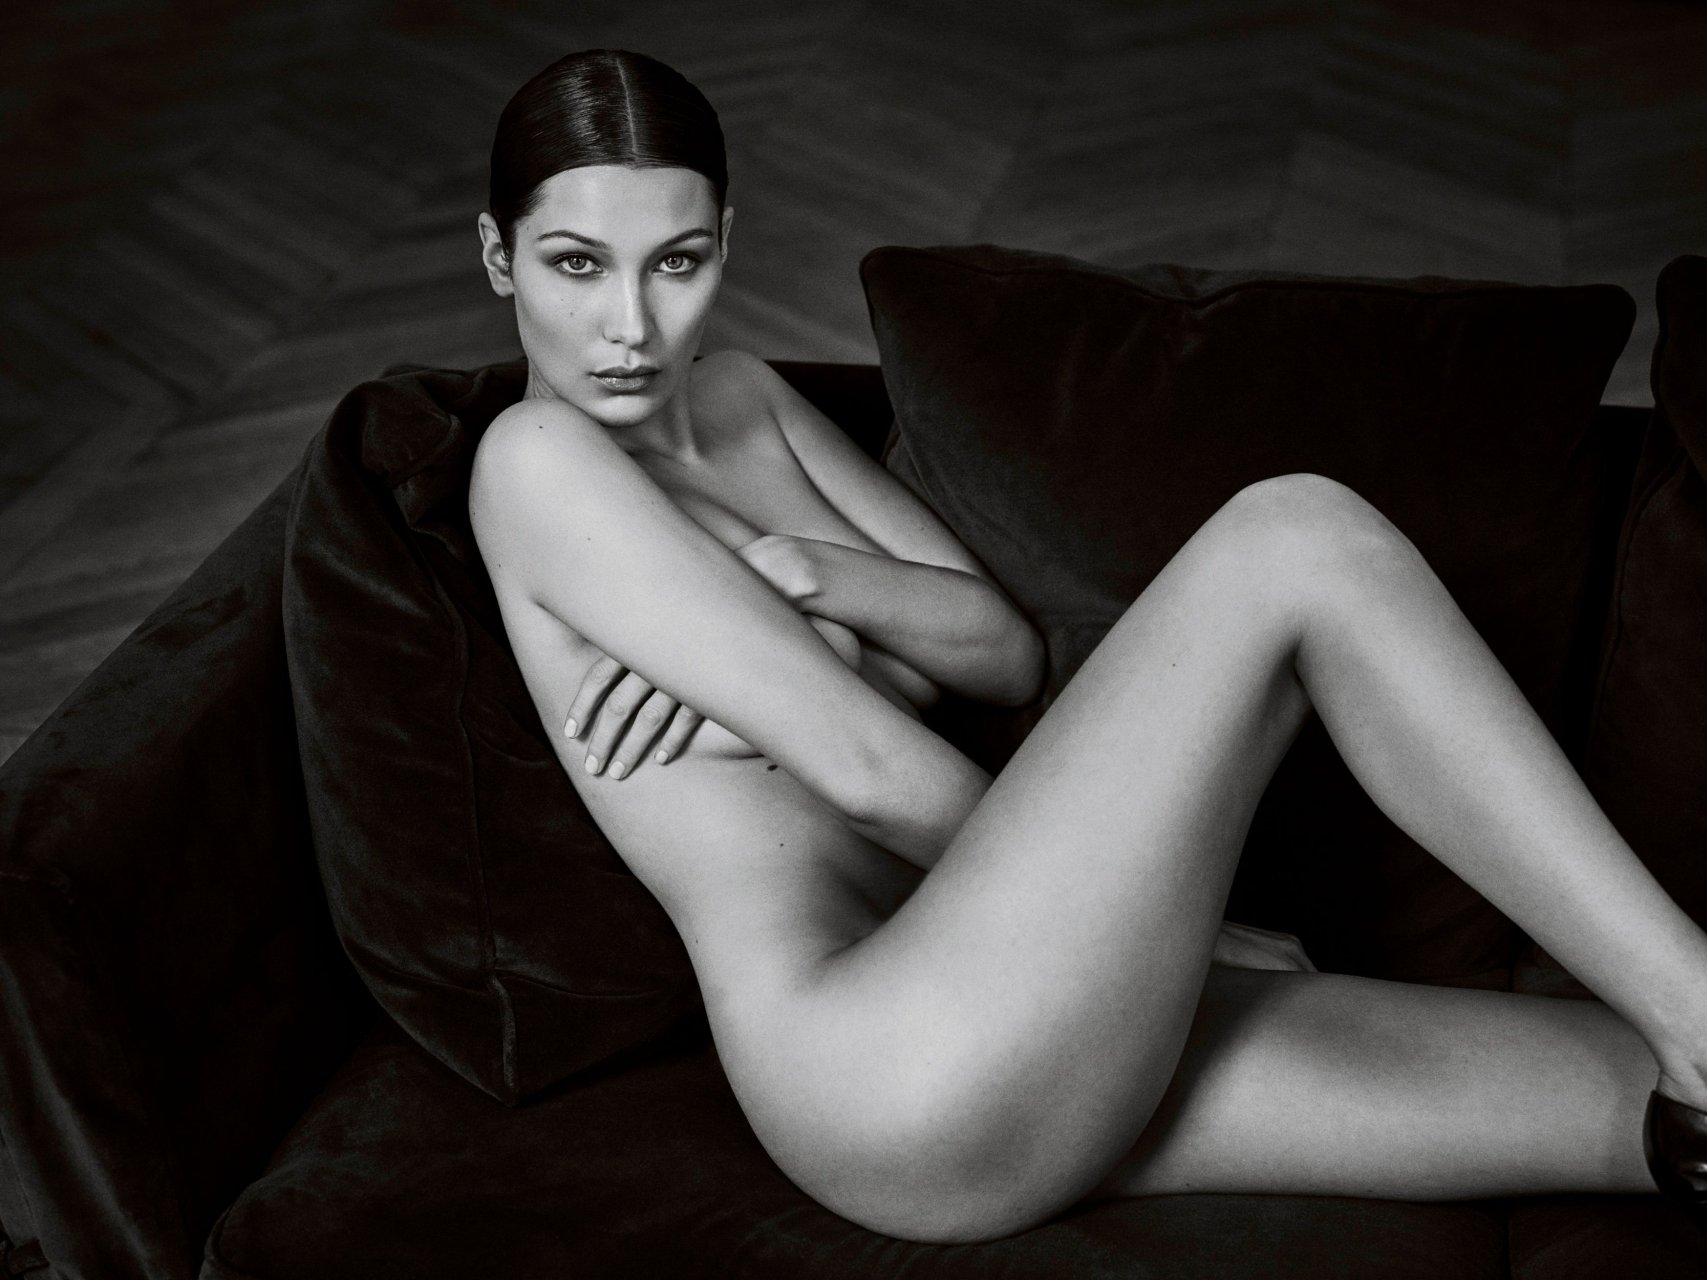 bella hadid nude amp sexy 3 photos celebrity leaks